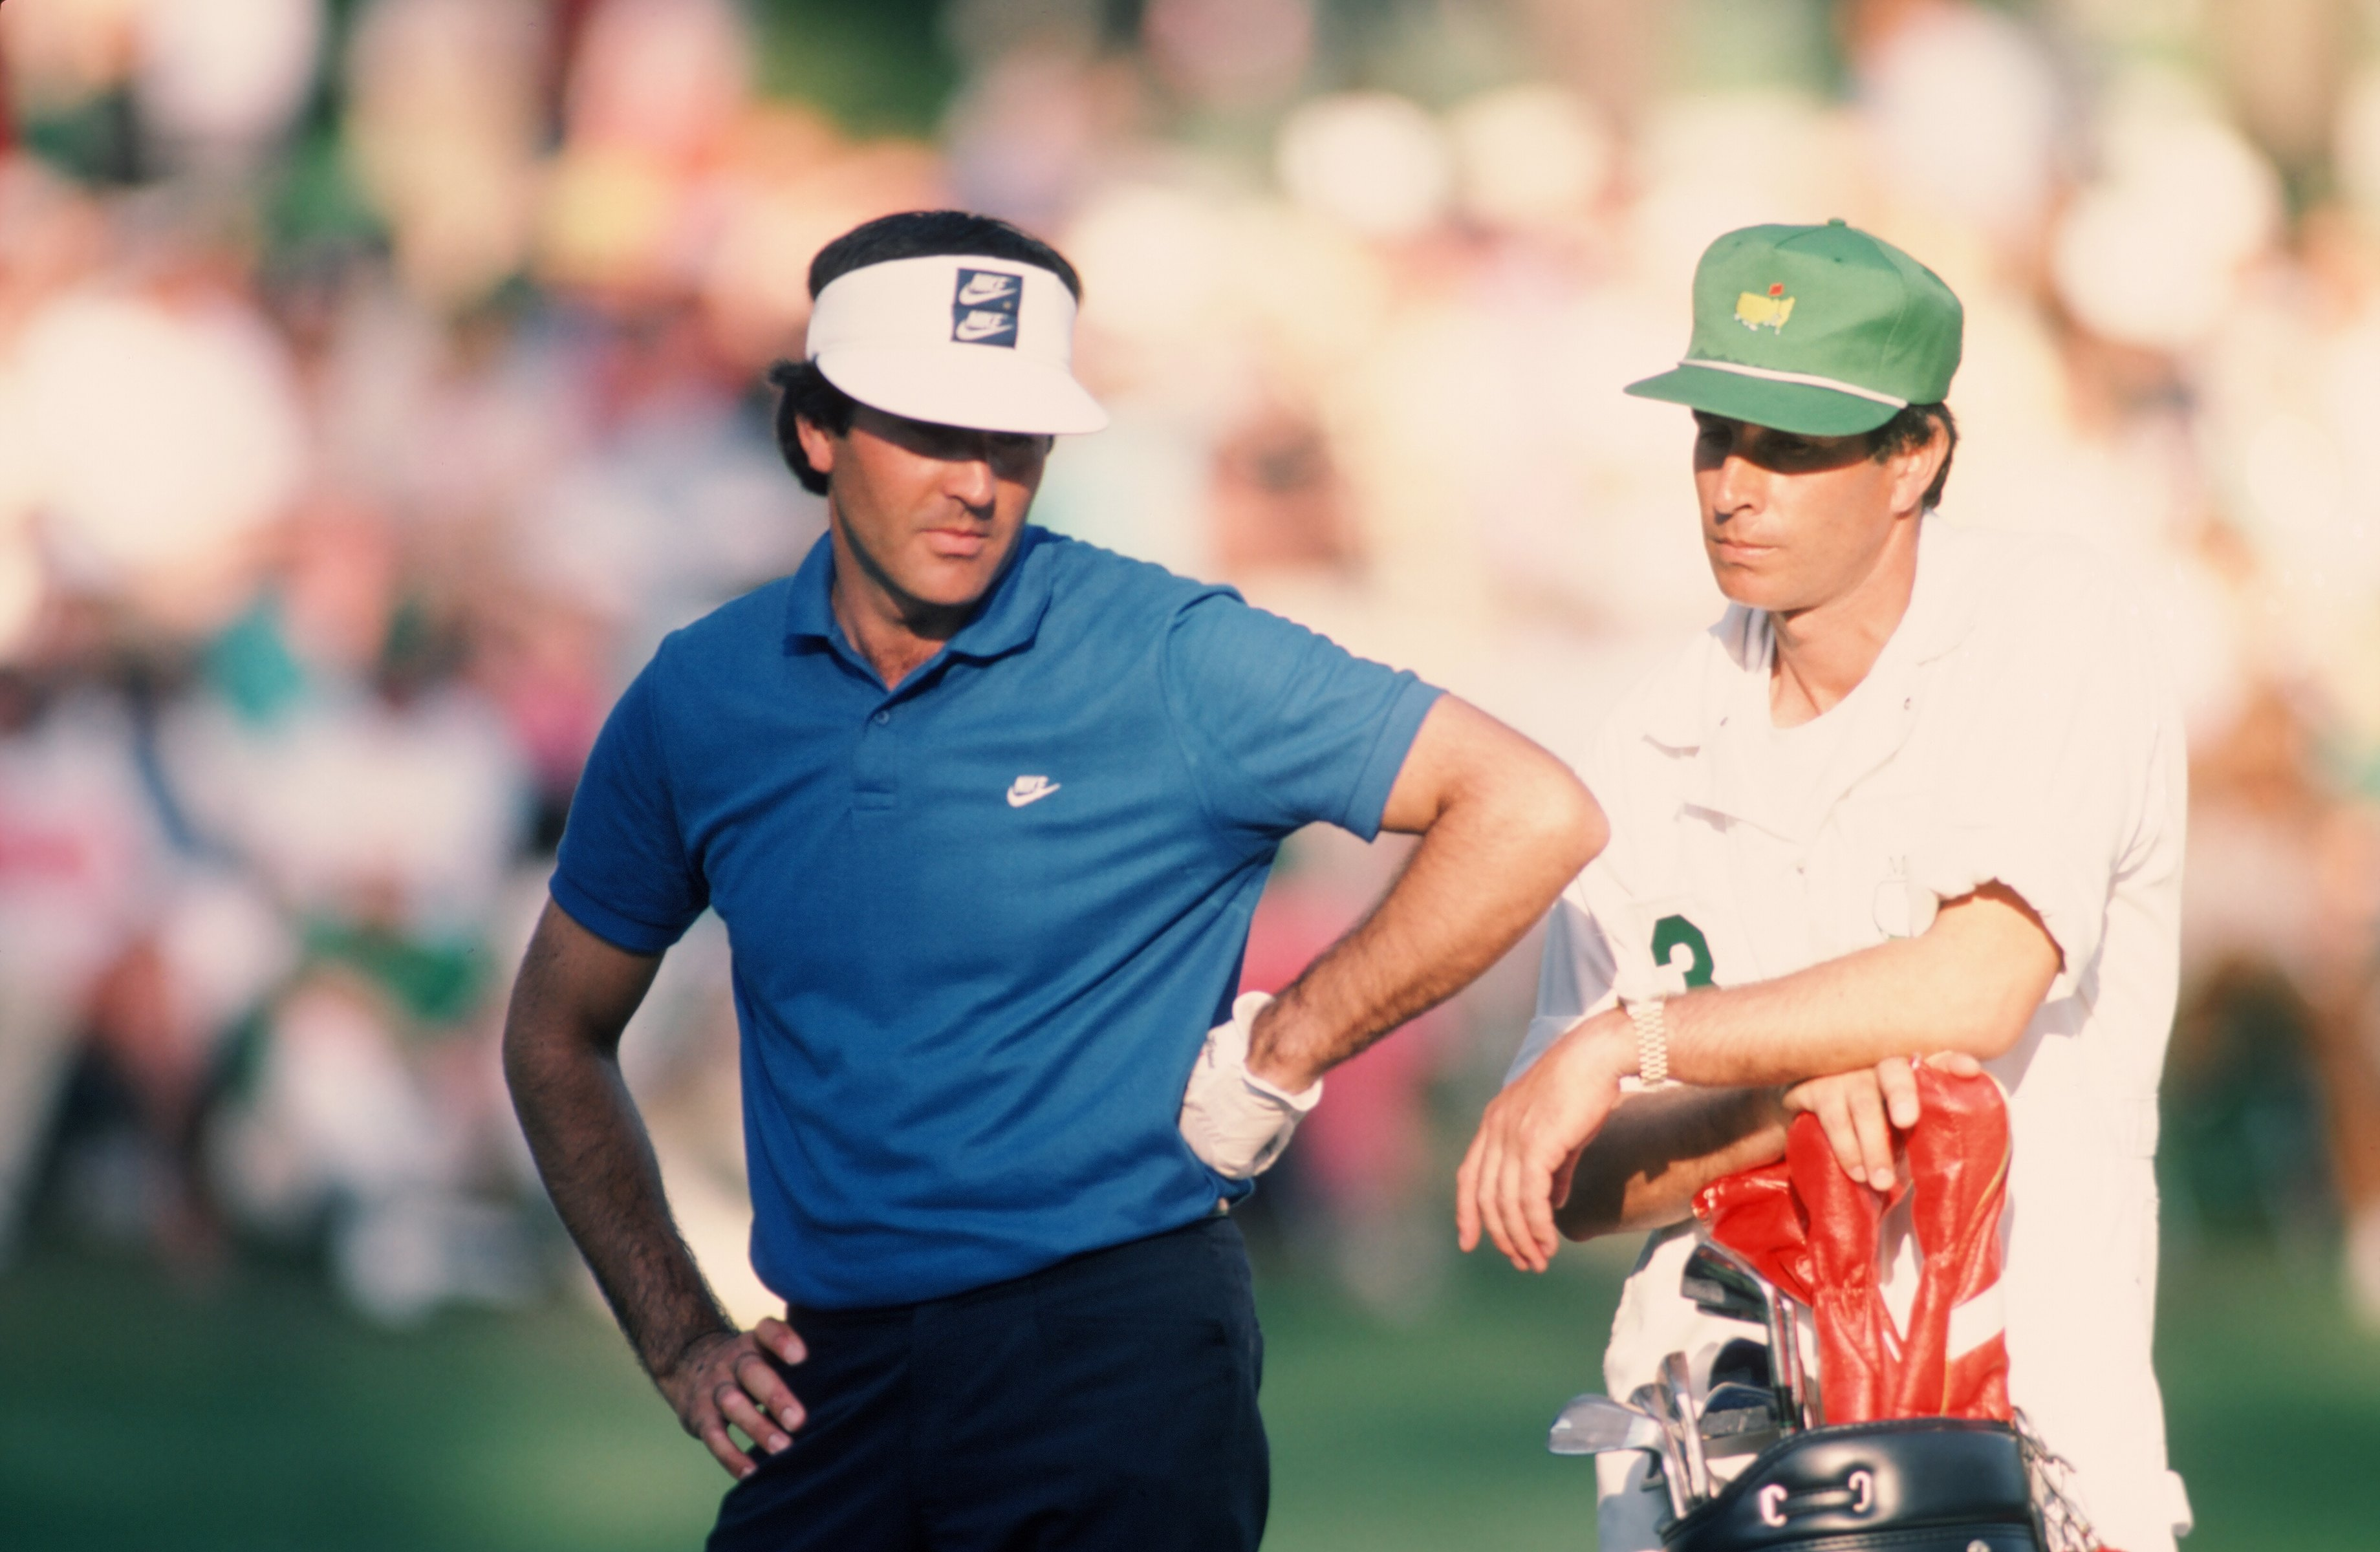 Seve Ballesteros signs an endorsement deal with Nike, helping the Swoosh enter the world of professional golf.